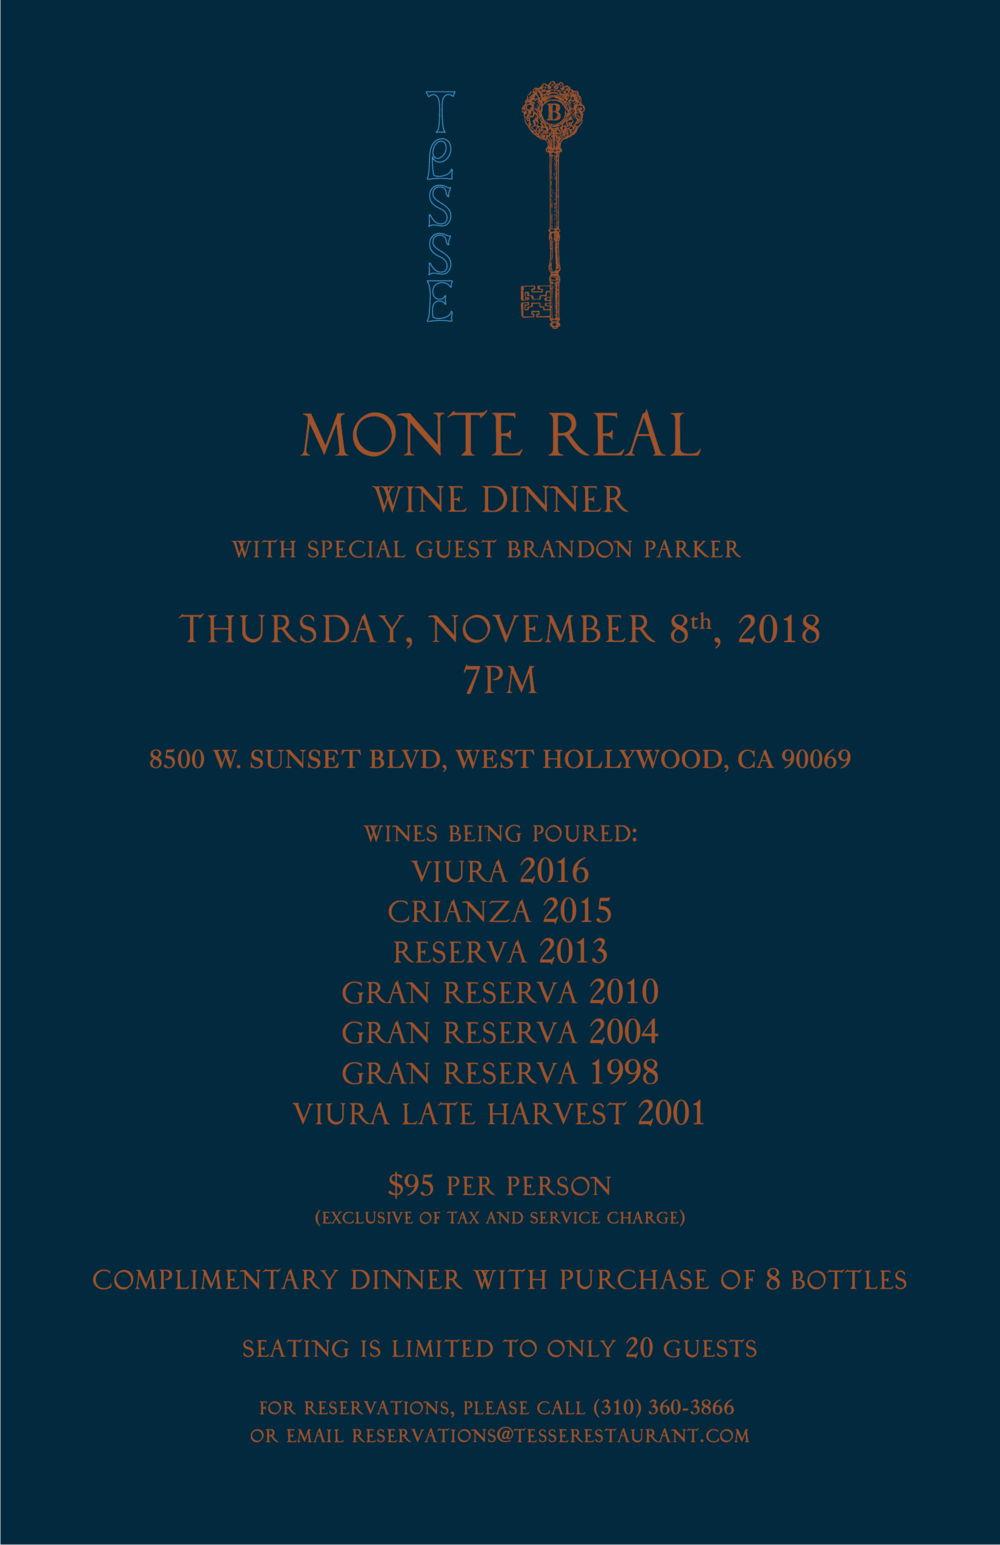 Monte Real Wine Dinner Invite.png